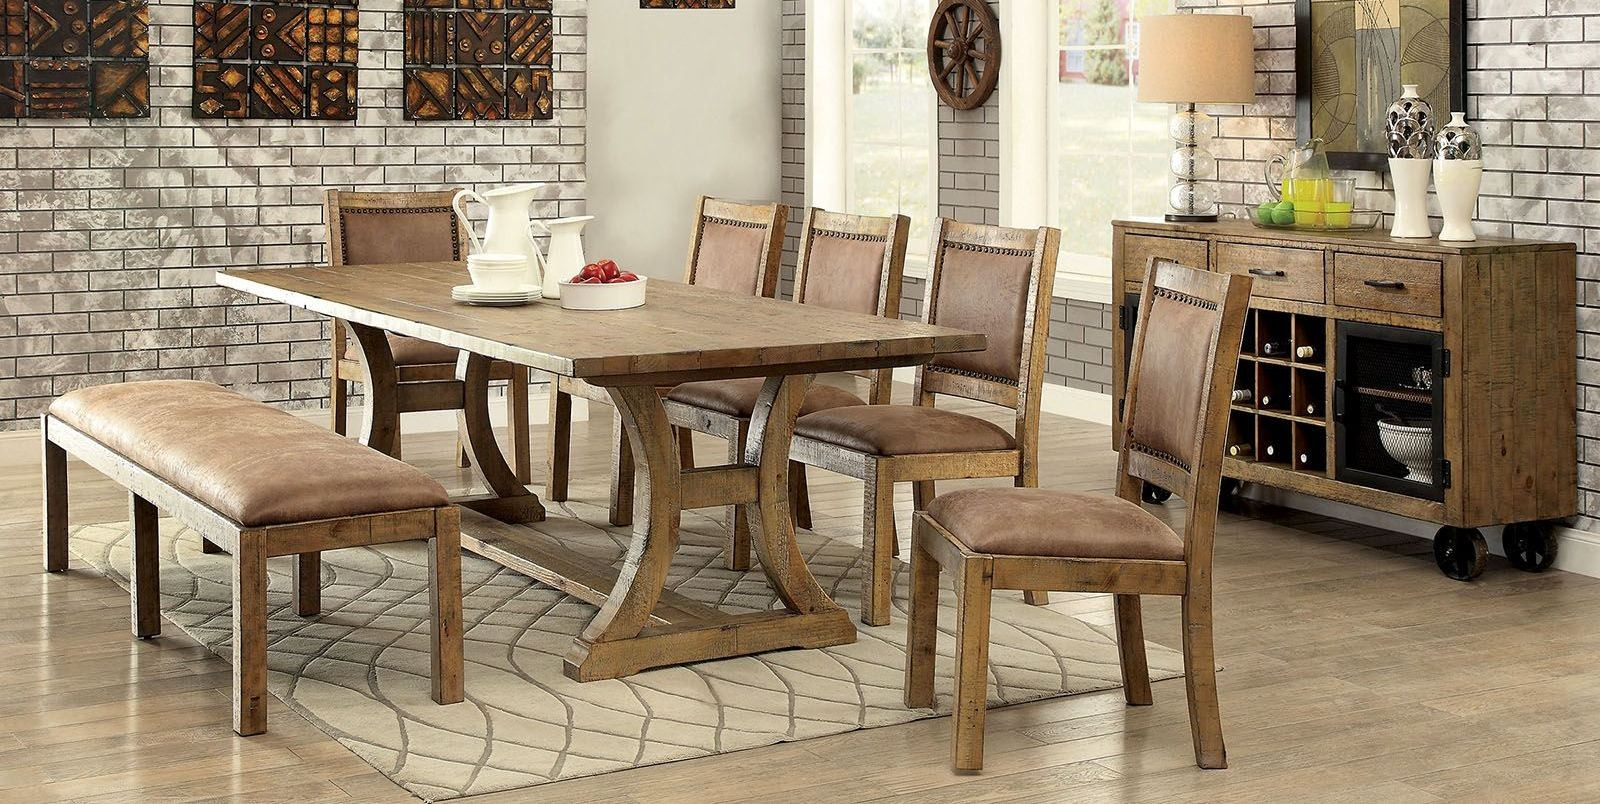 Gianna Rustic Pine Extendable Rectangular Dining Room Set CM3829T Furniture